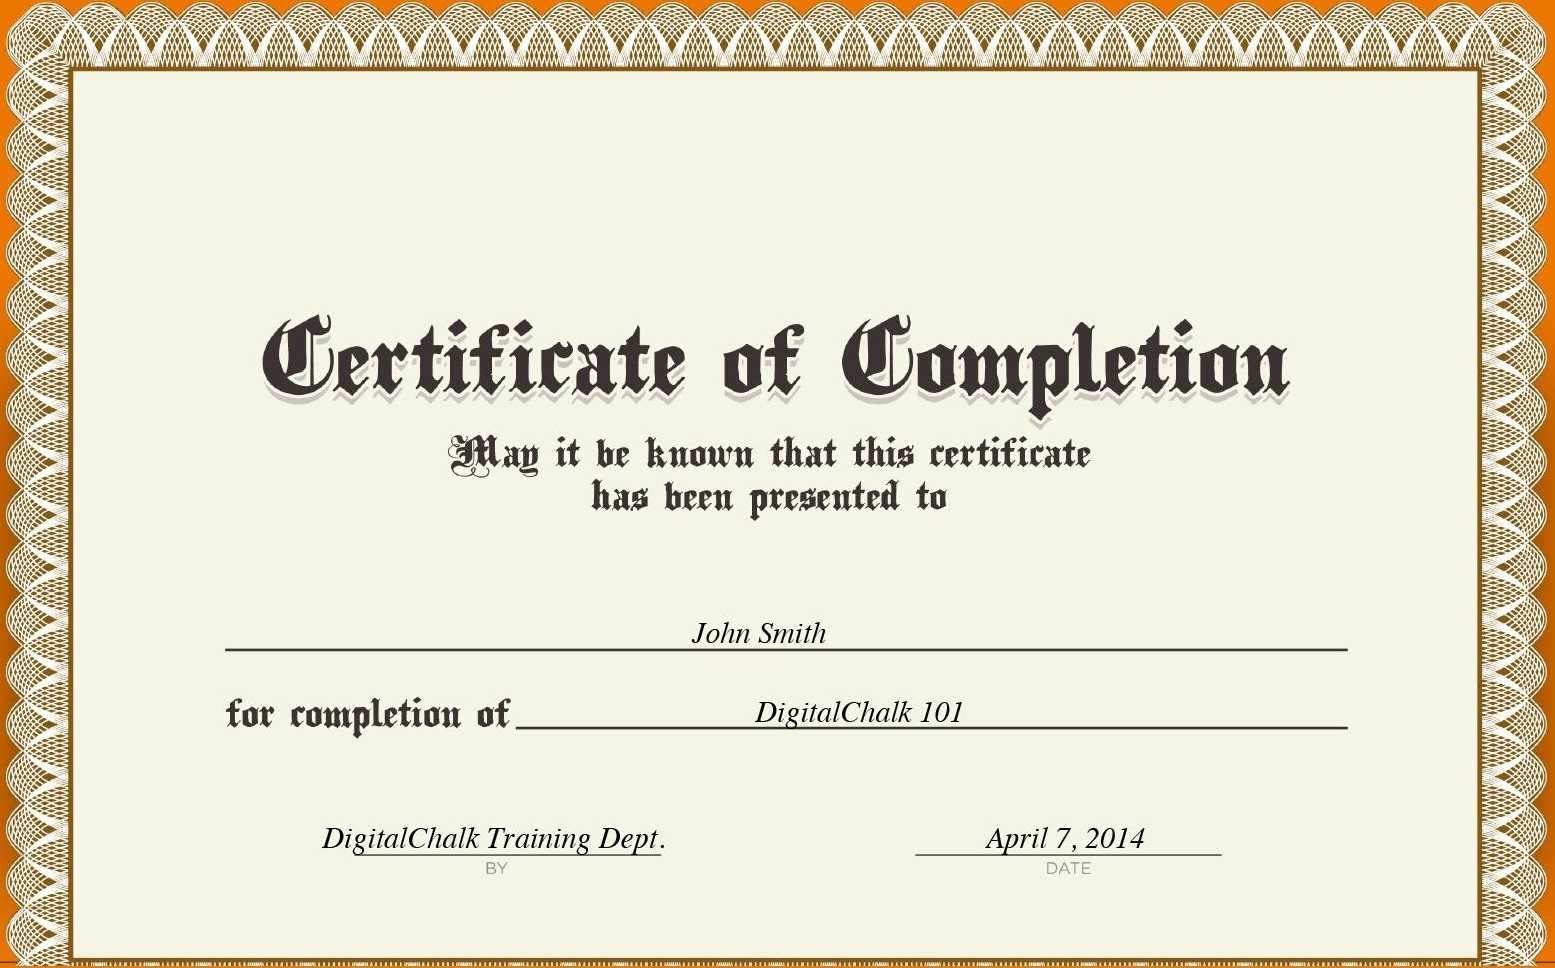 Certificates. Best Completion Certificate Template Designs intended for Certification Of Completion Template